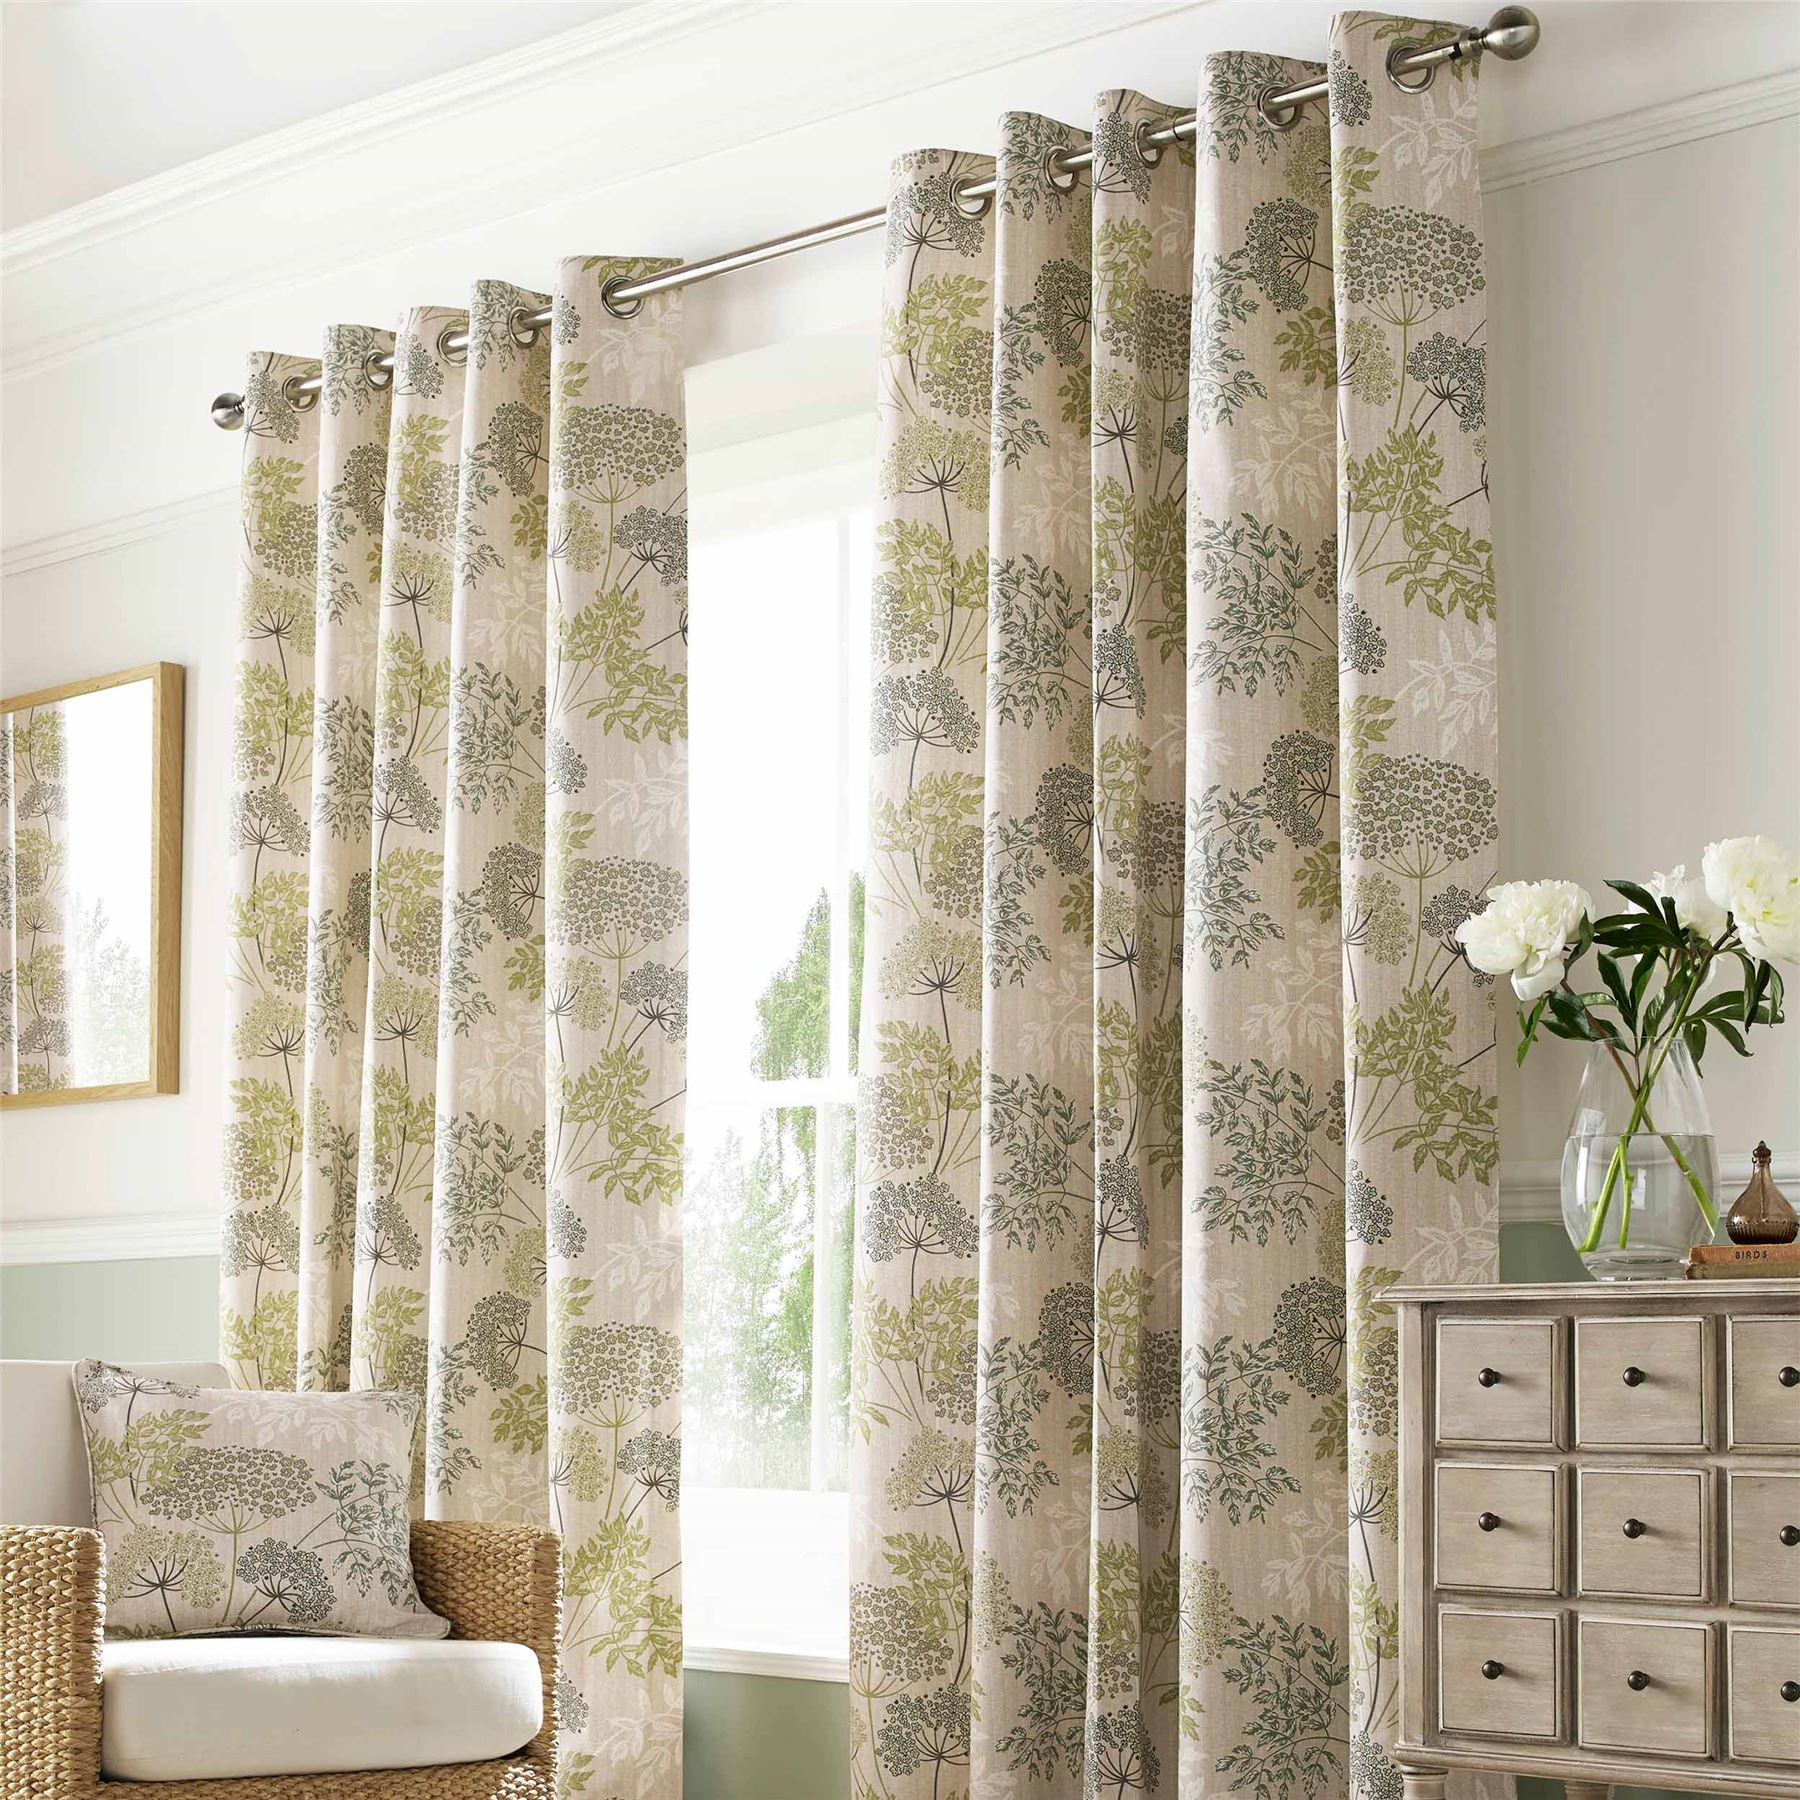 Living Room Ready Made Curtains Botanical Floral Ready Made Curtains Pair Fully Lined Eyelet Style